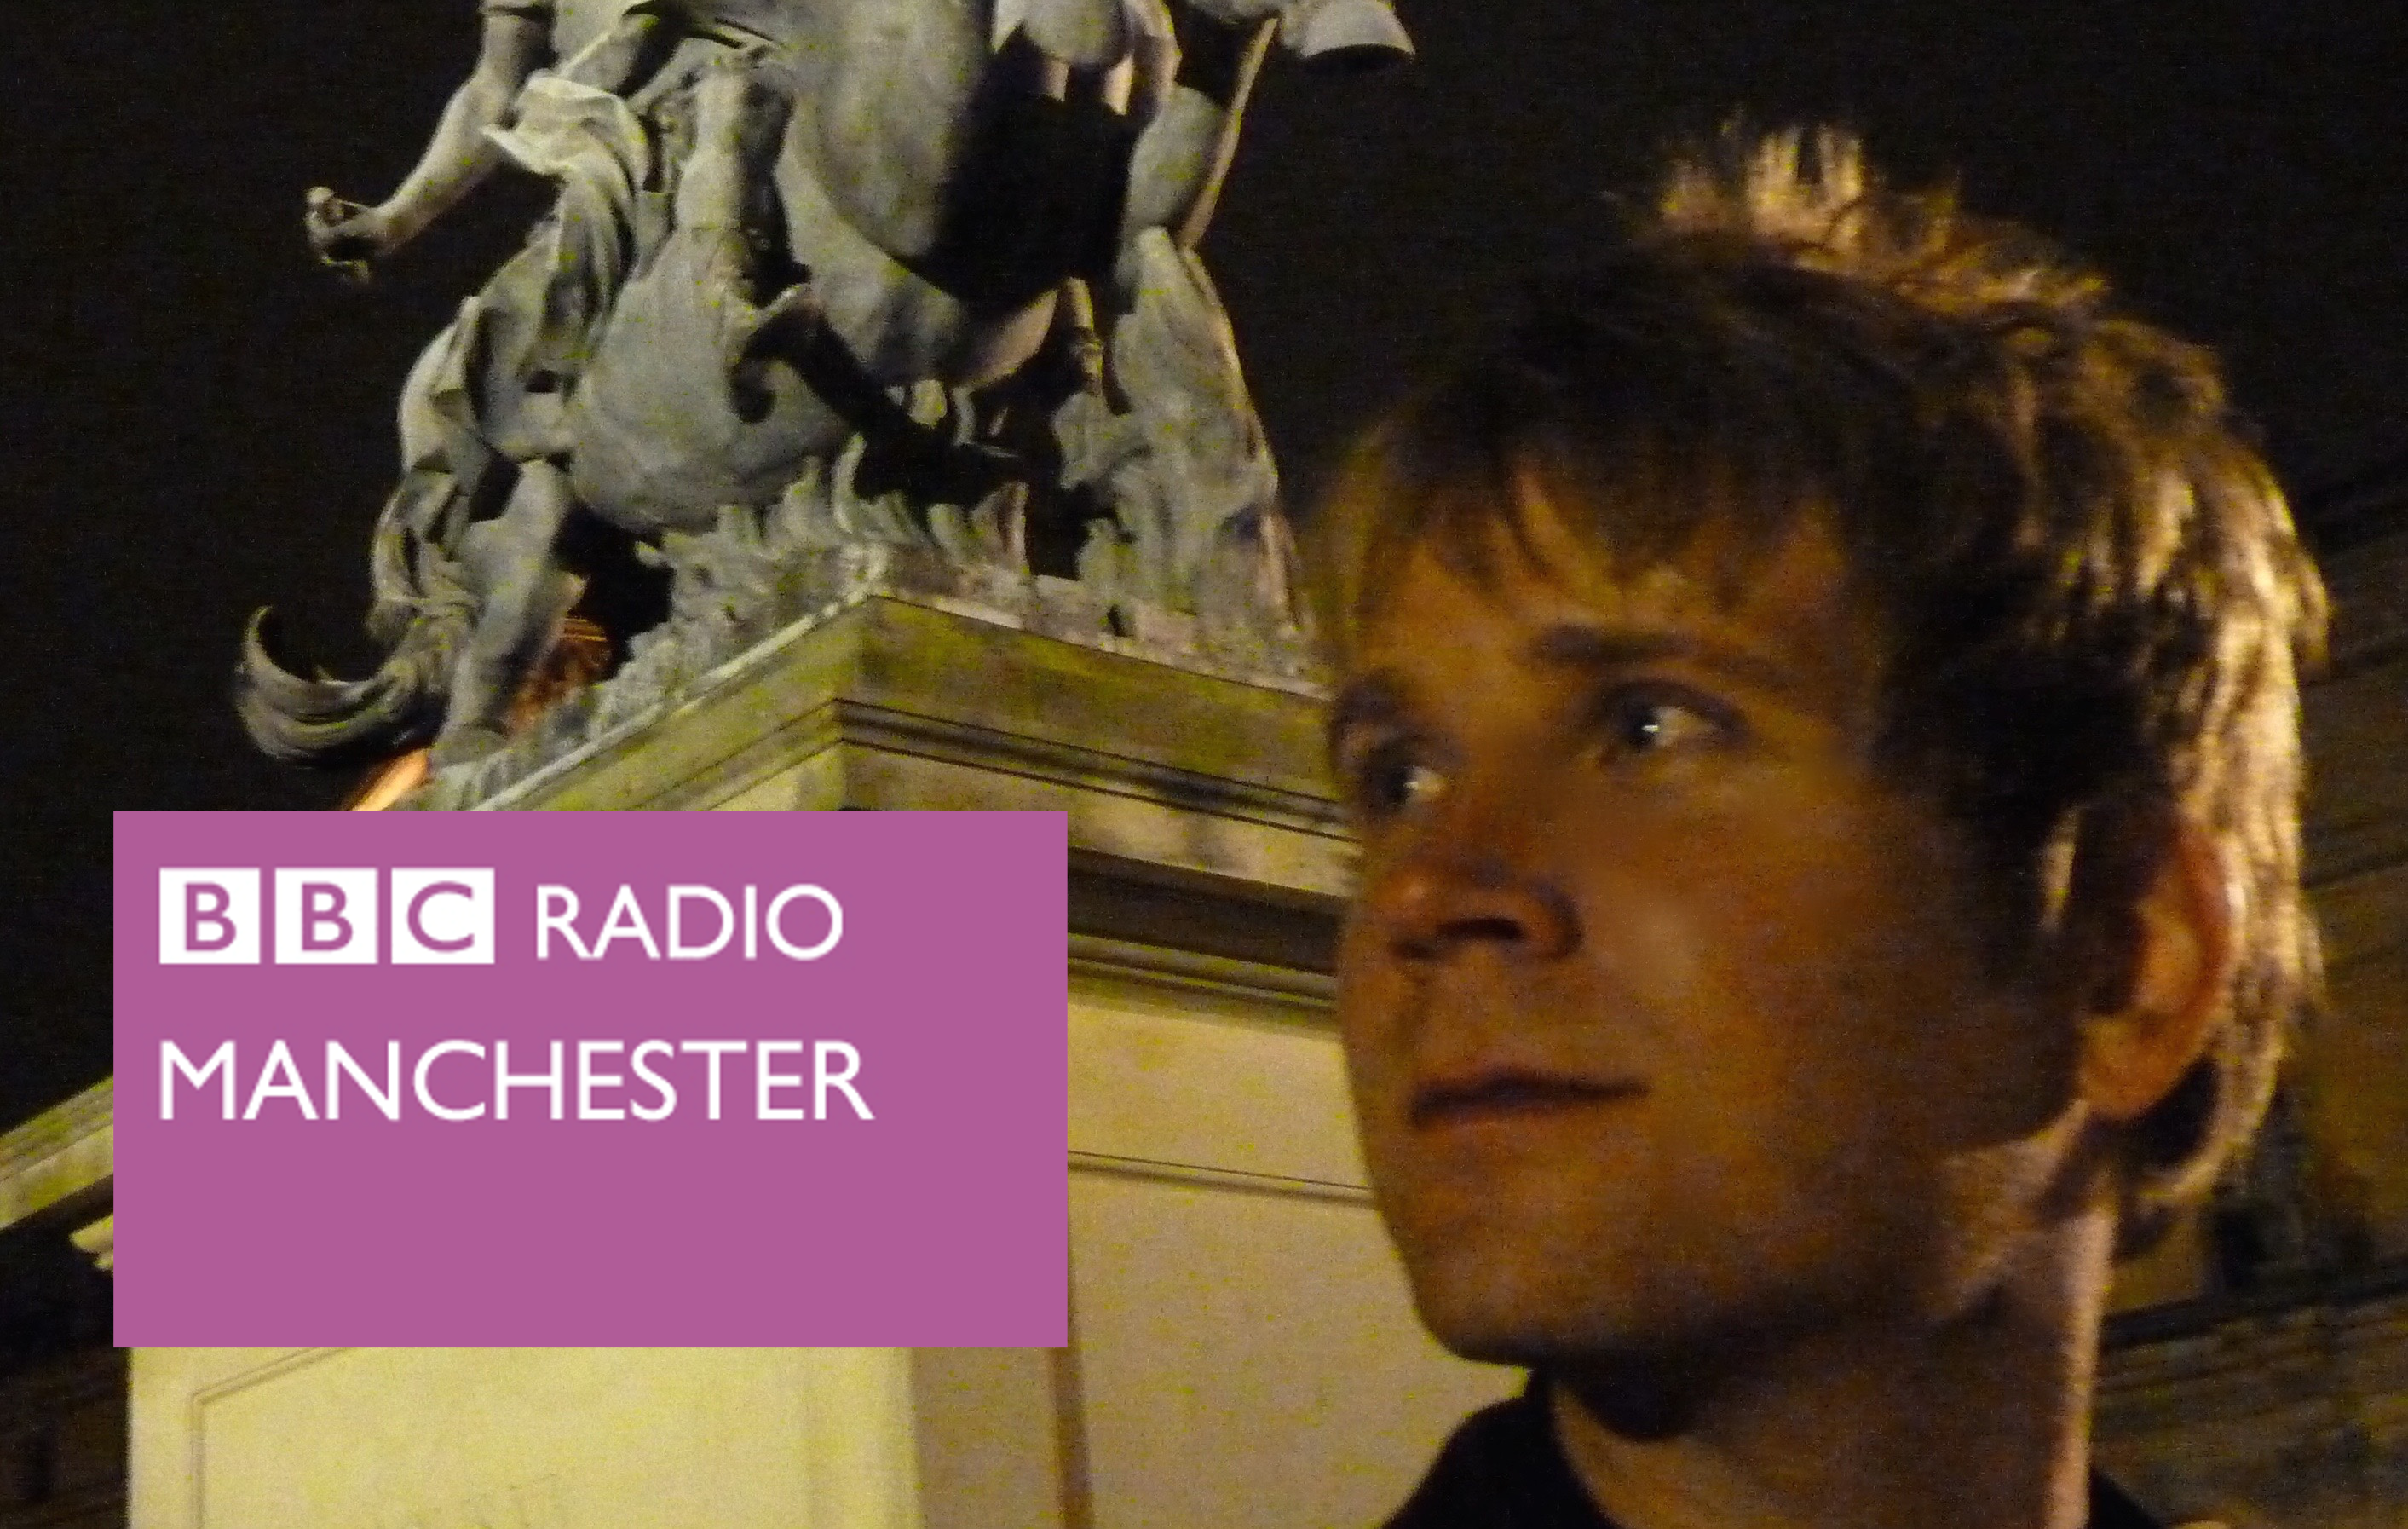 BBC Radio Manchester Interview at Hopwood Hall: By Factory, Digital Agency In Manchester